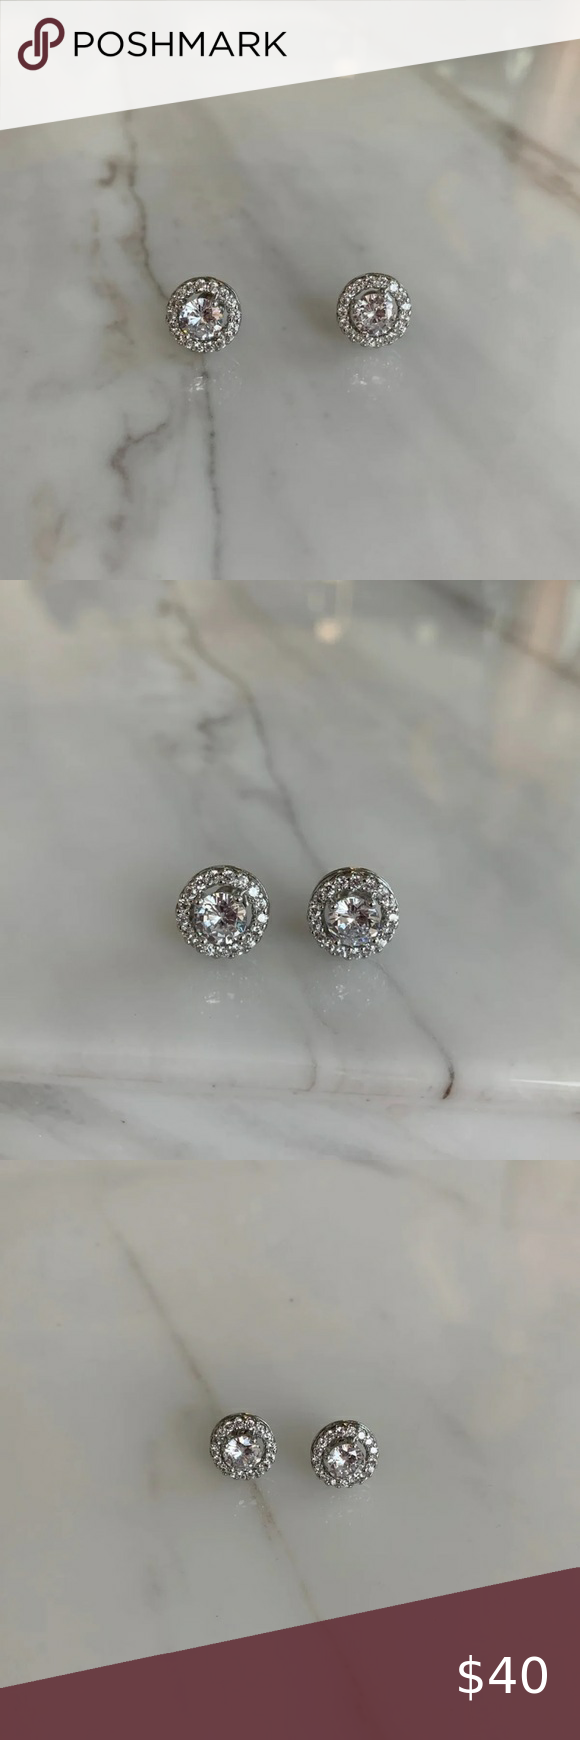 Gorgeous Classy Circle Stud Earrings